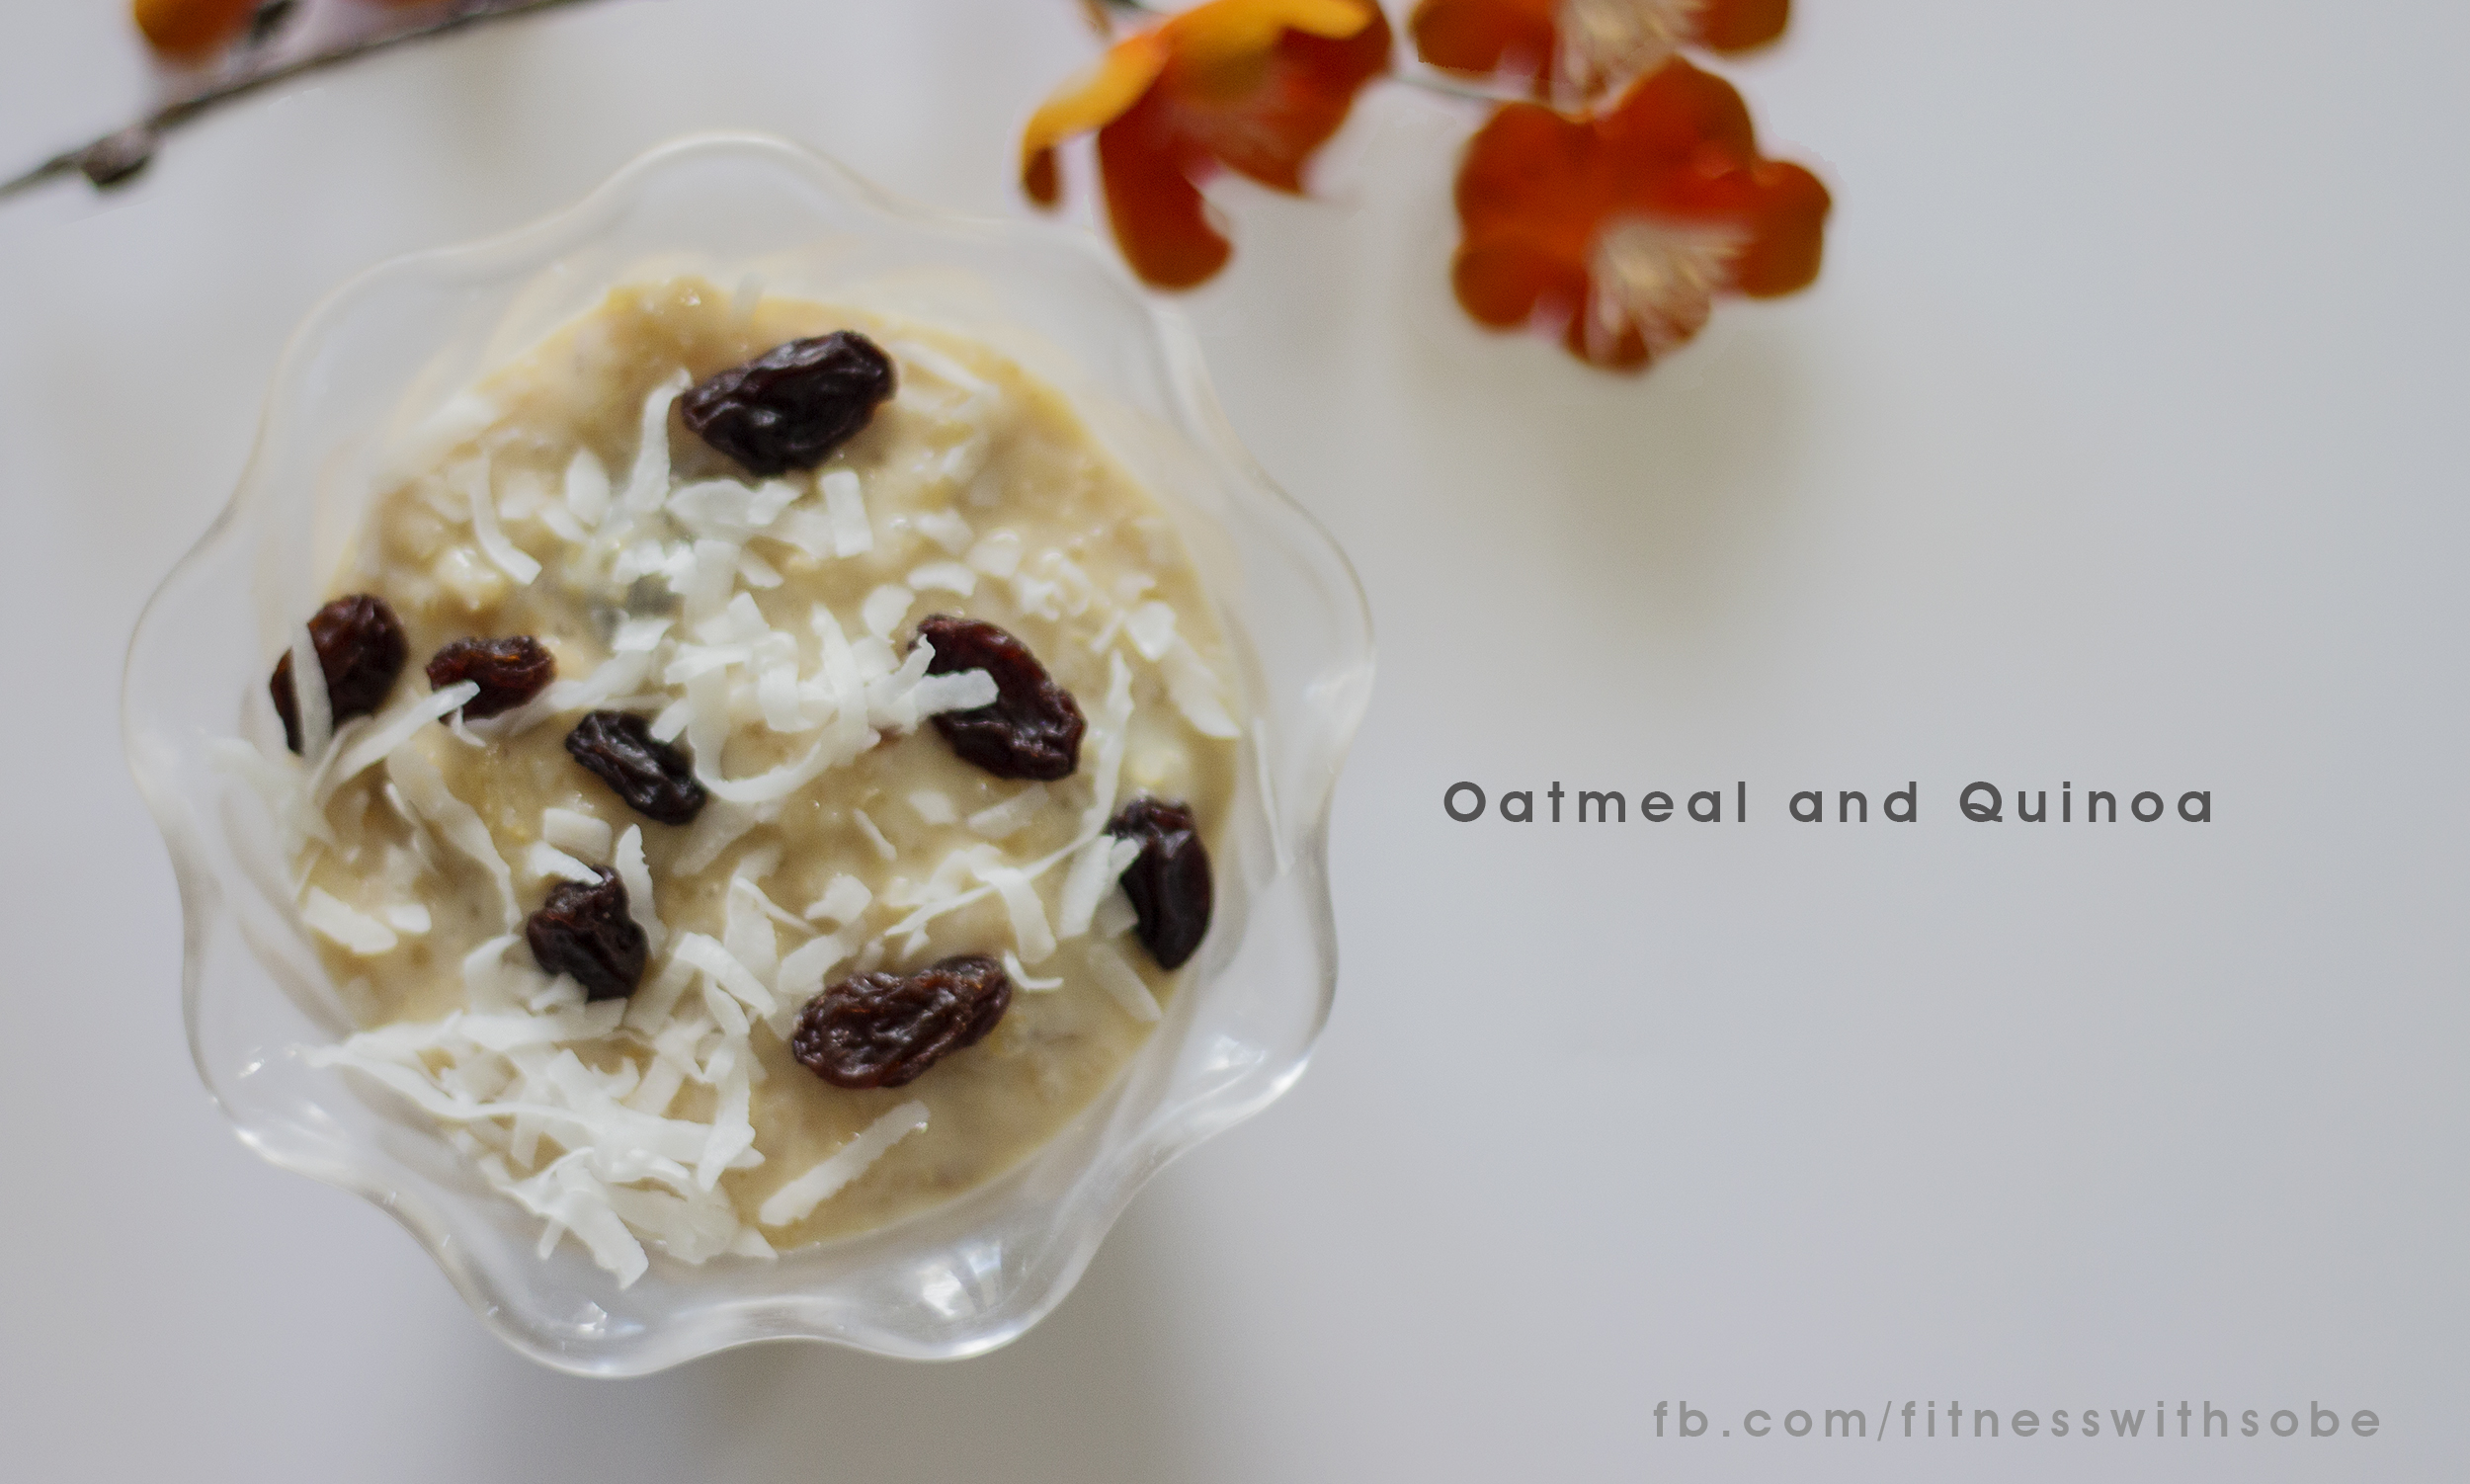 Add 1/2 cup of Oatmeal and 1/2 cup of Quinoa, 1/2 gallon of Almond milk (Unsweetened) to a pan.  Add 1tbs of Vanilla extract, raisins and coconut flakes (unsweetened) to taste.  Let boil for 30 minutes.